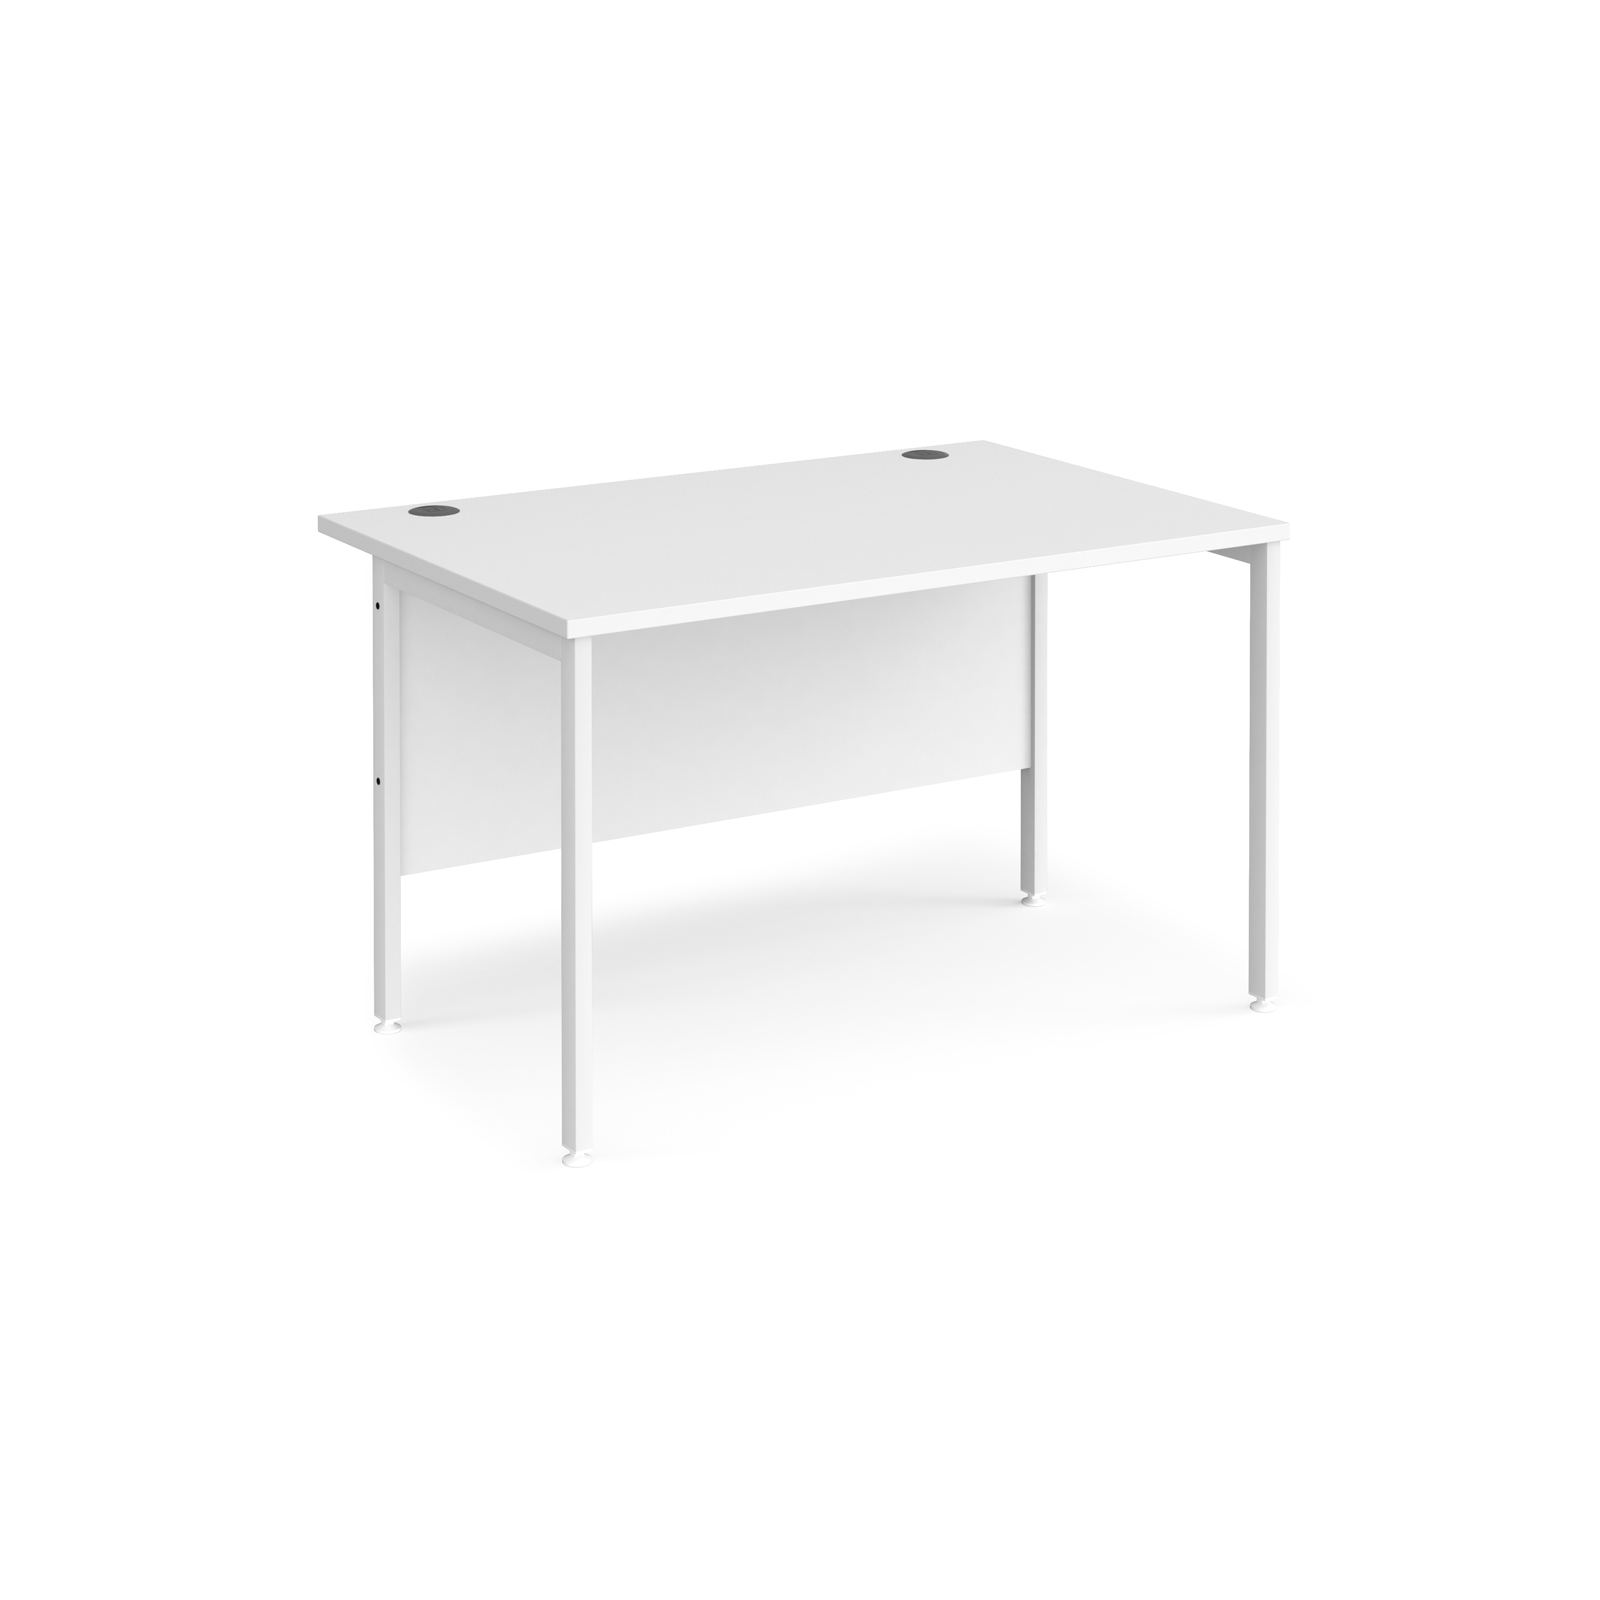 Maestro 25 straight desk 1200mm x 800mm - white H-frame leg, white top